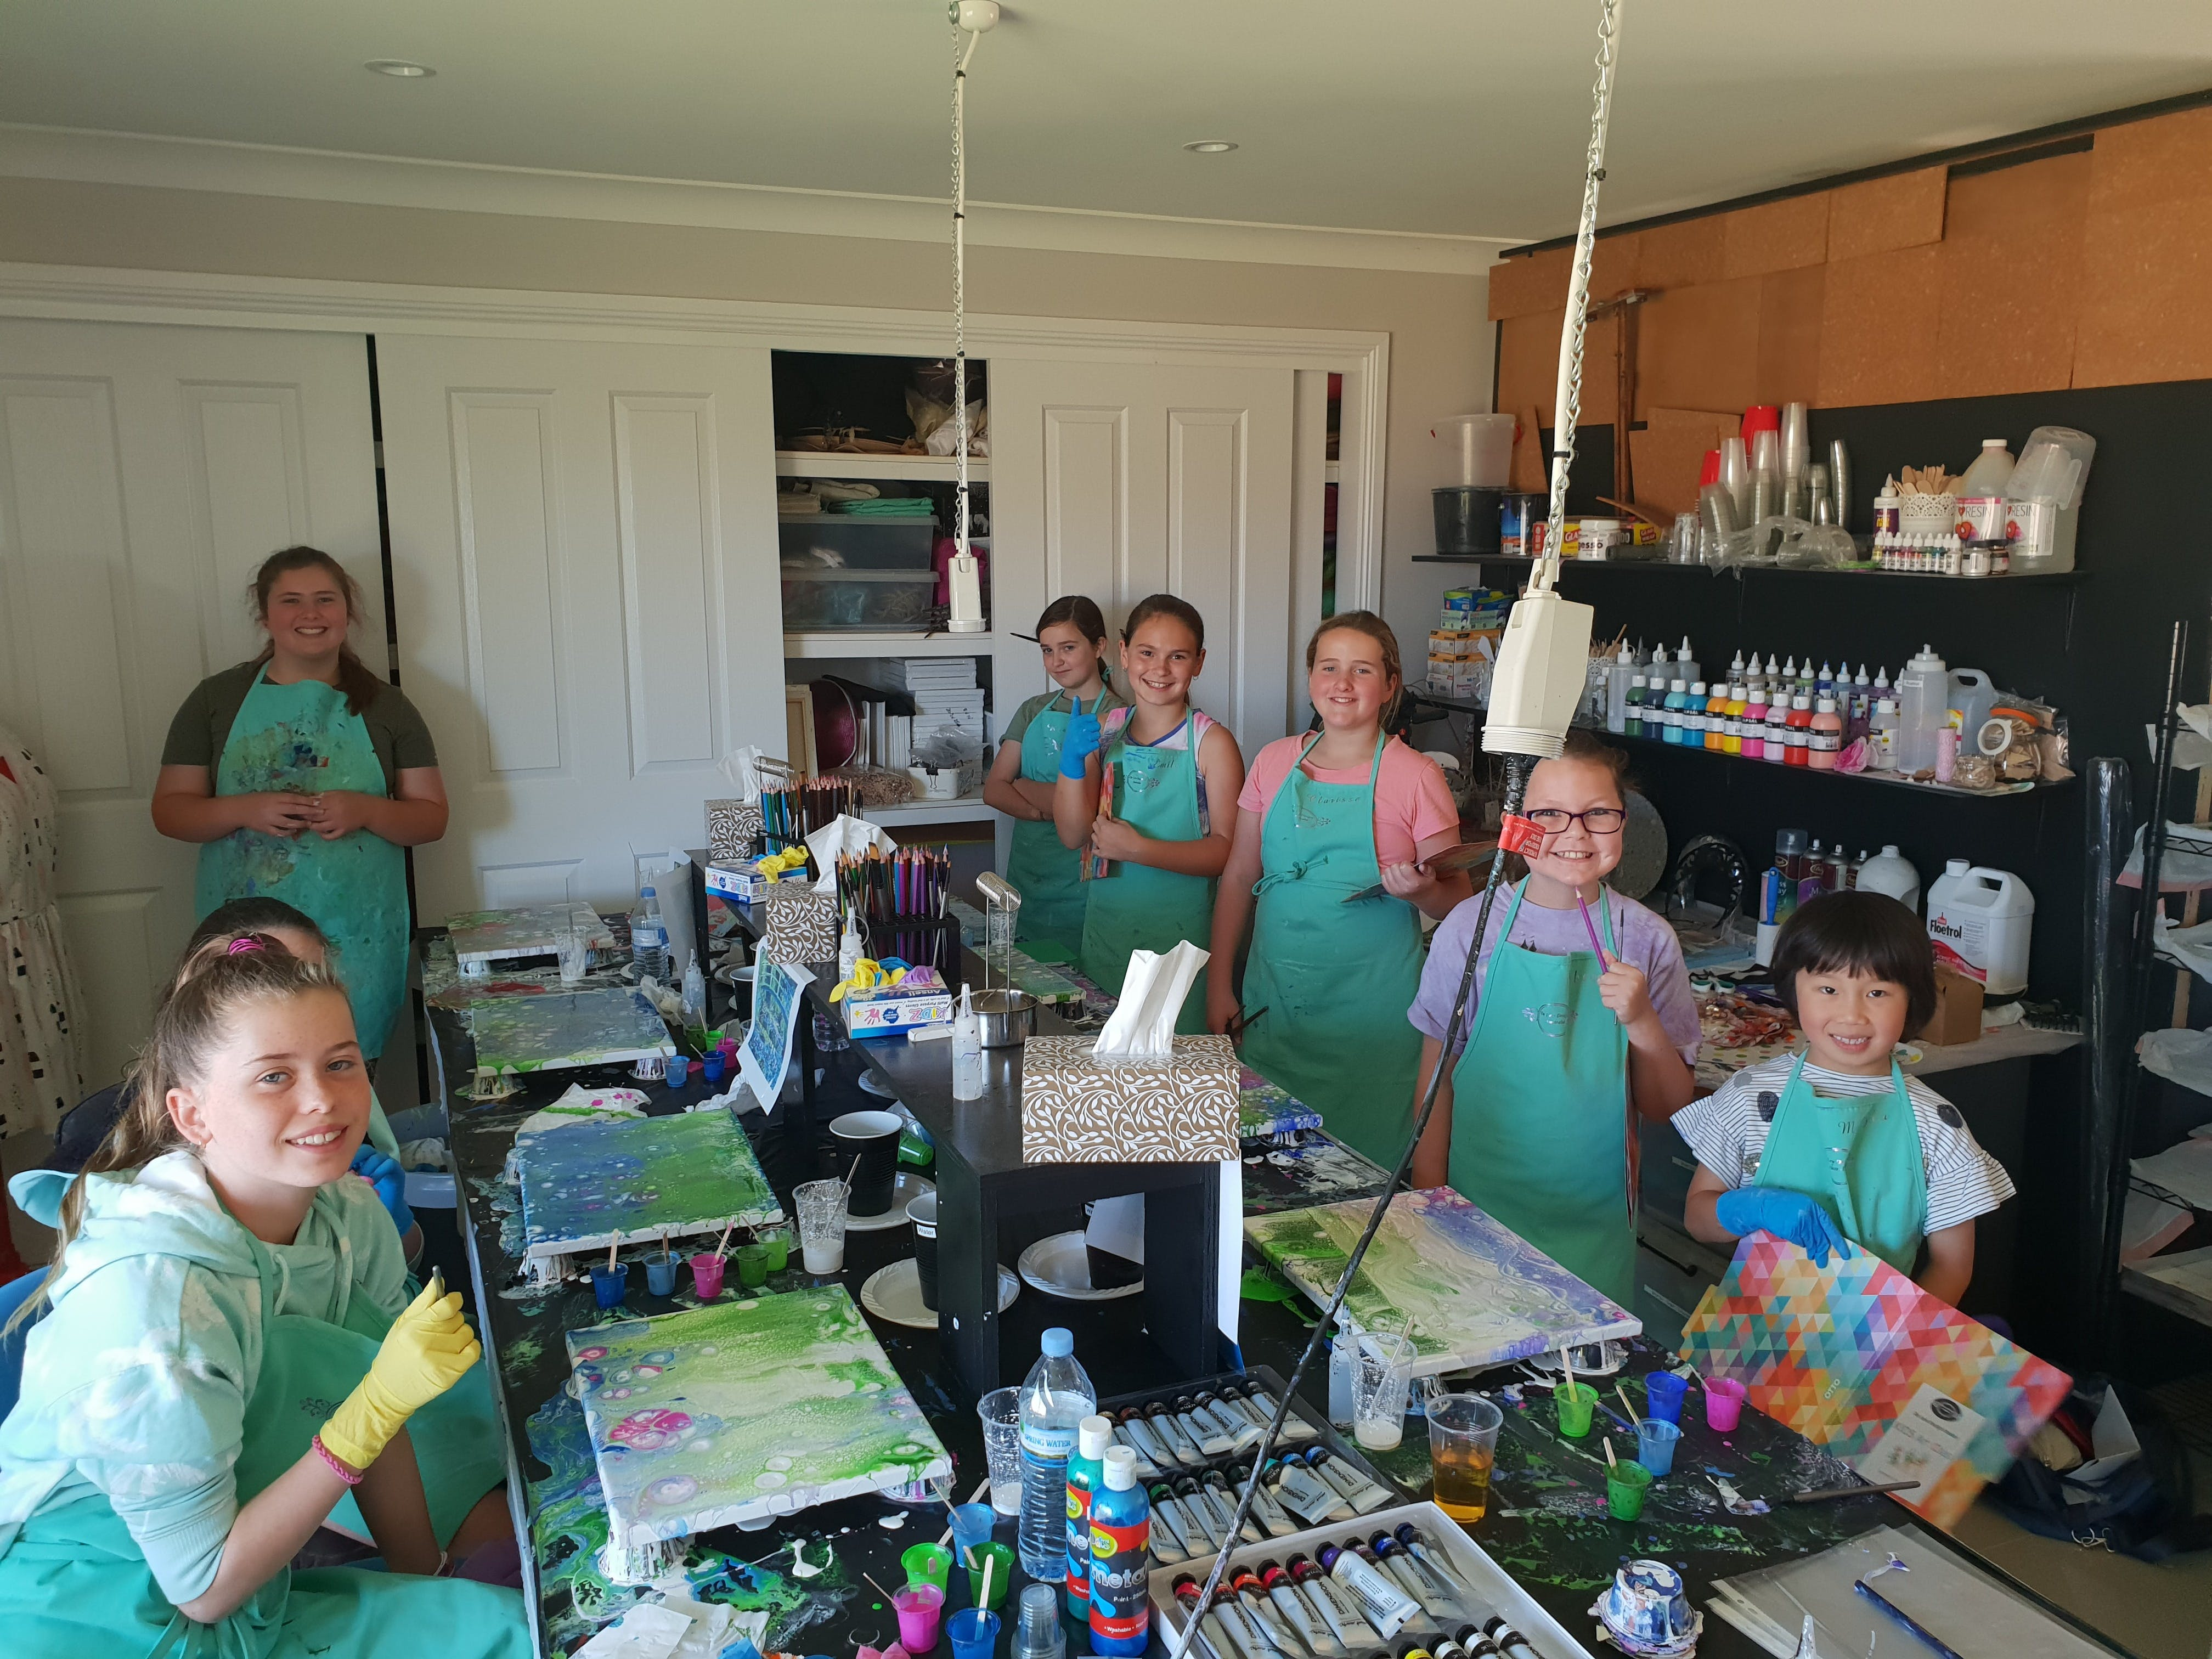 School holidays - Kids art class - Painting - Accommodation Tasmania